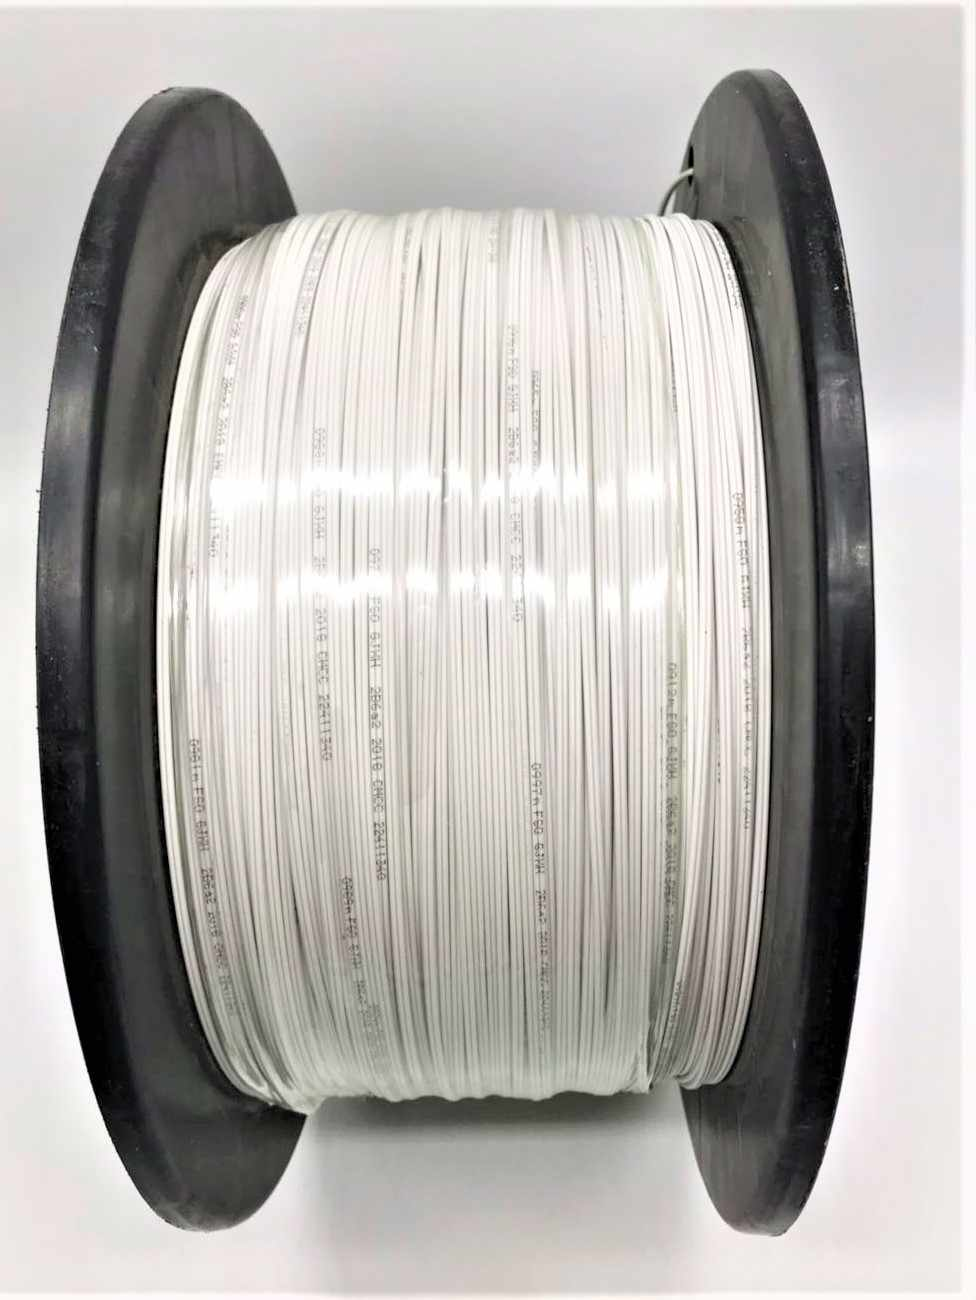 New and original items 1000m/roll 2 Cores 3 Steel Wire outdoor G657 FTTH fiber optic Drop Wire Cable LSZH sheath  in stock